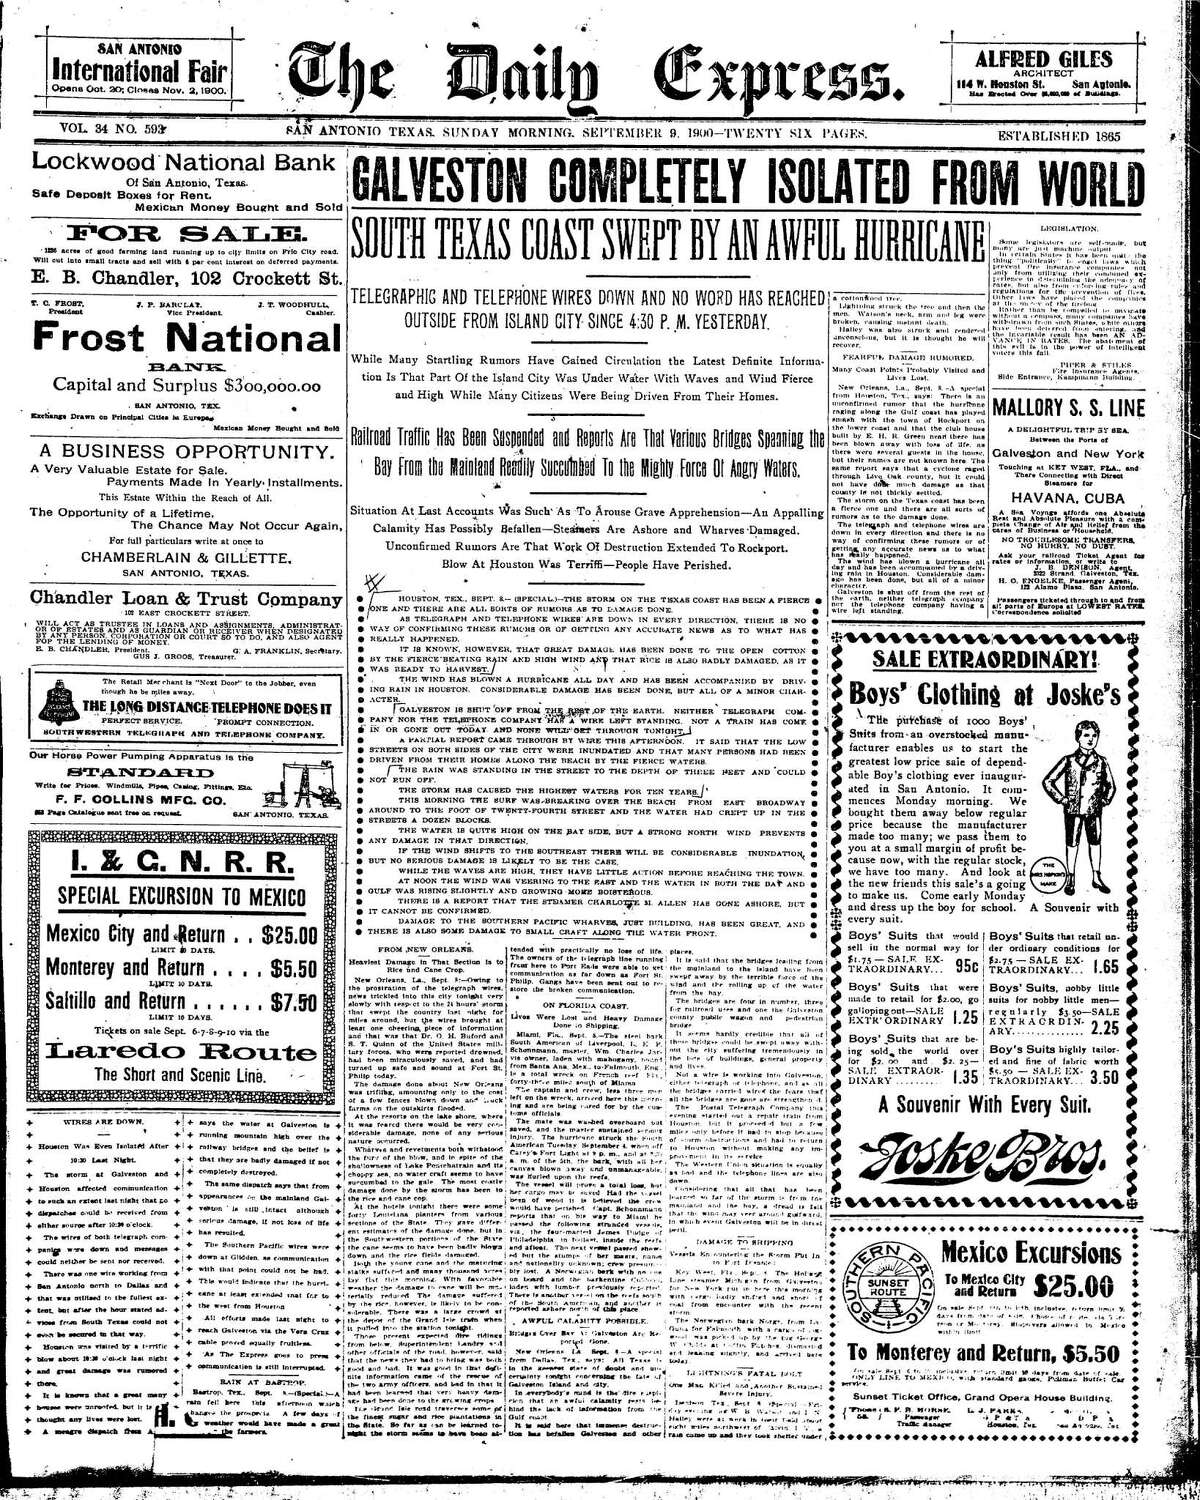 The Sept. 9, 1900. Daily Express carried tragic headlines about the hurricane that devastated Galveston the day before. Initial reports were sketchy about the details. More than a dozen ads on the front page were surrounded by the news of the day.